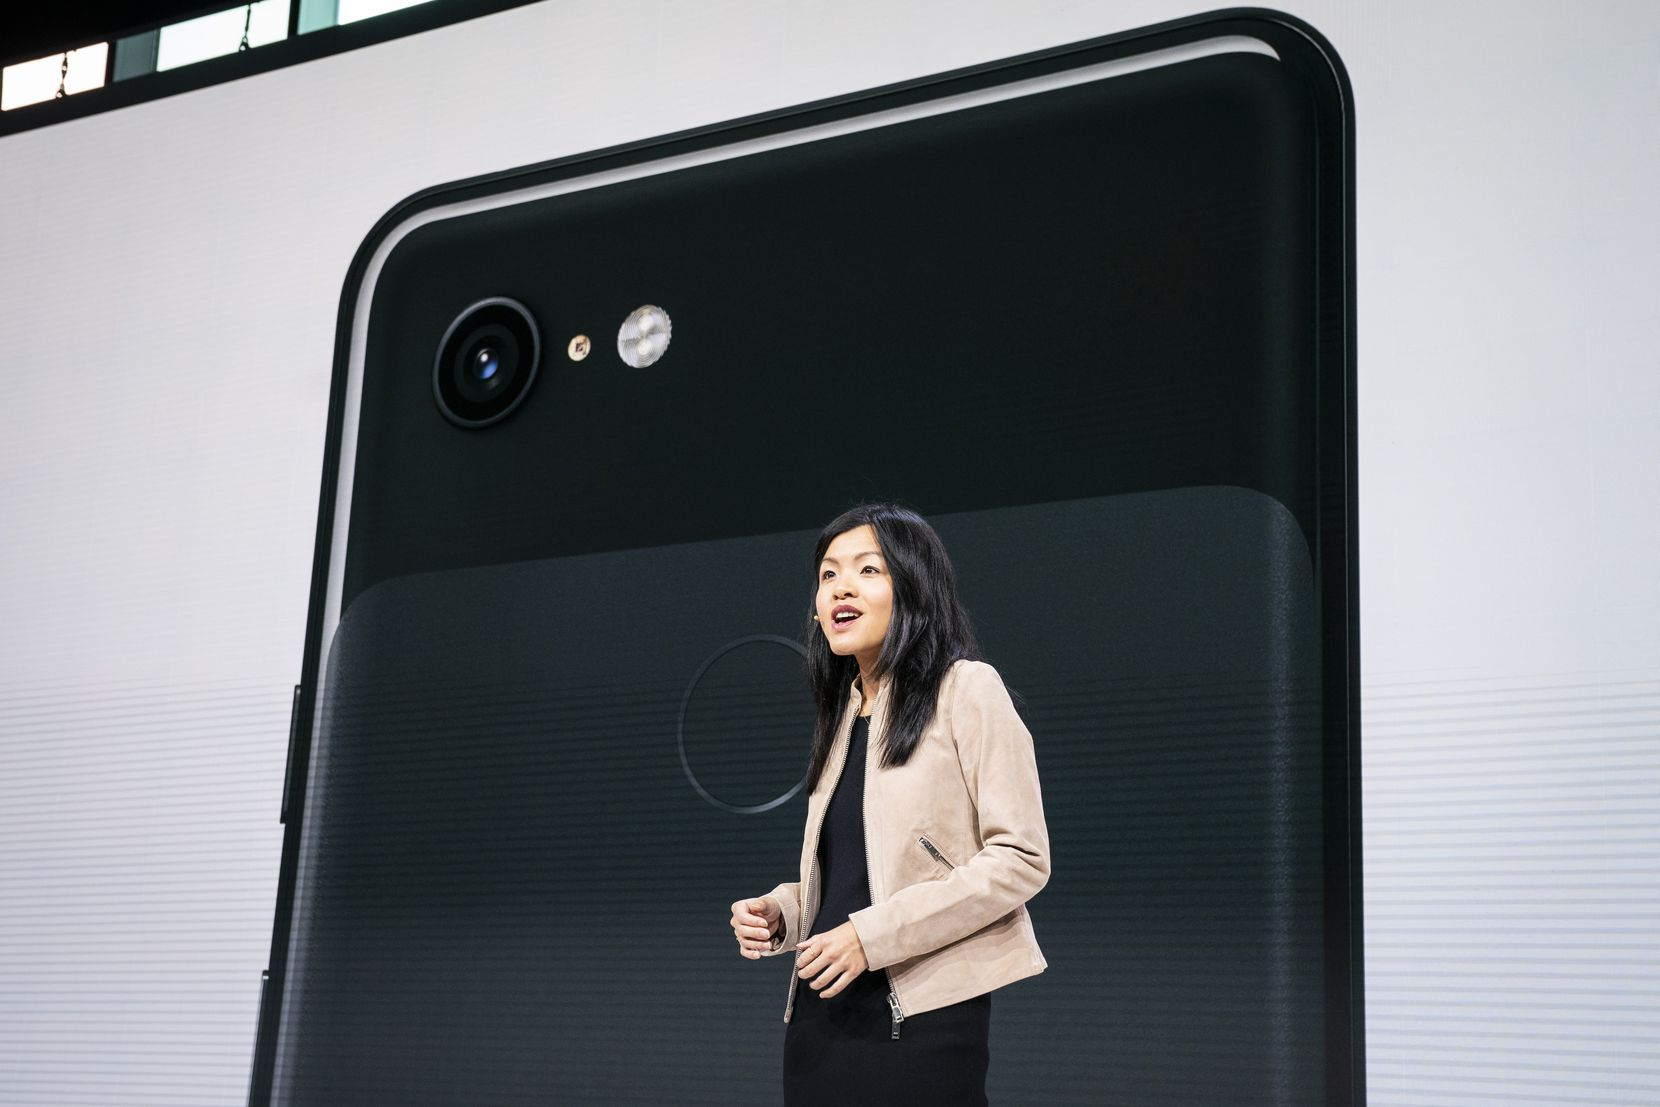 Liza Ma, product manager at Google, discusses the new Google Pixel 3 and Pixel 3 XL smartphones during a Google product release event in October in New York City.